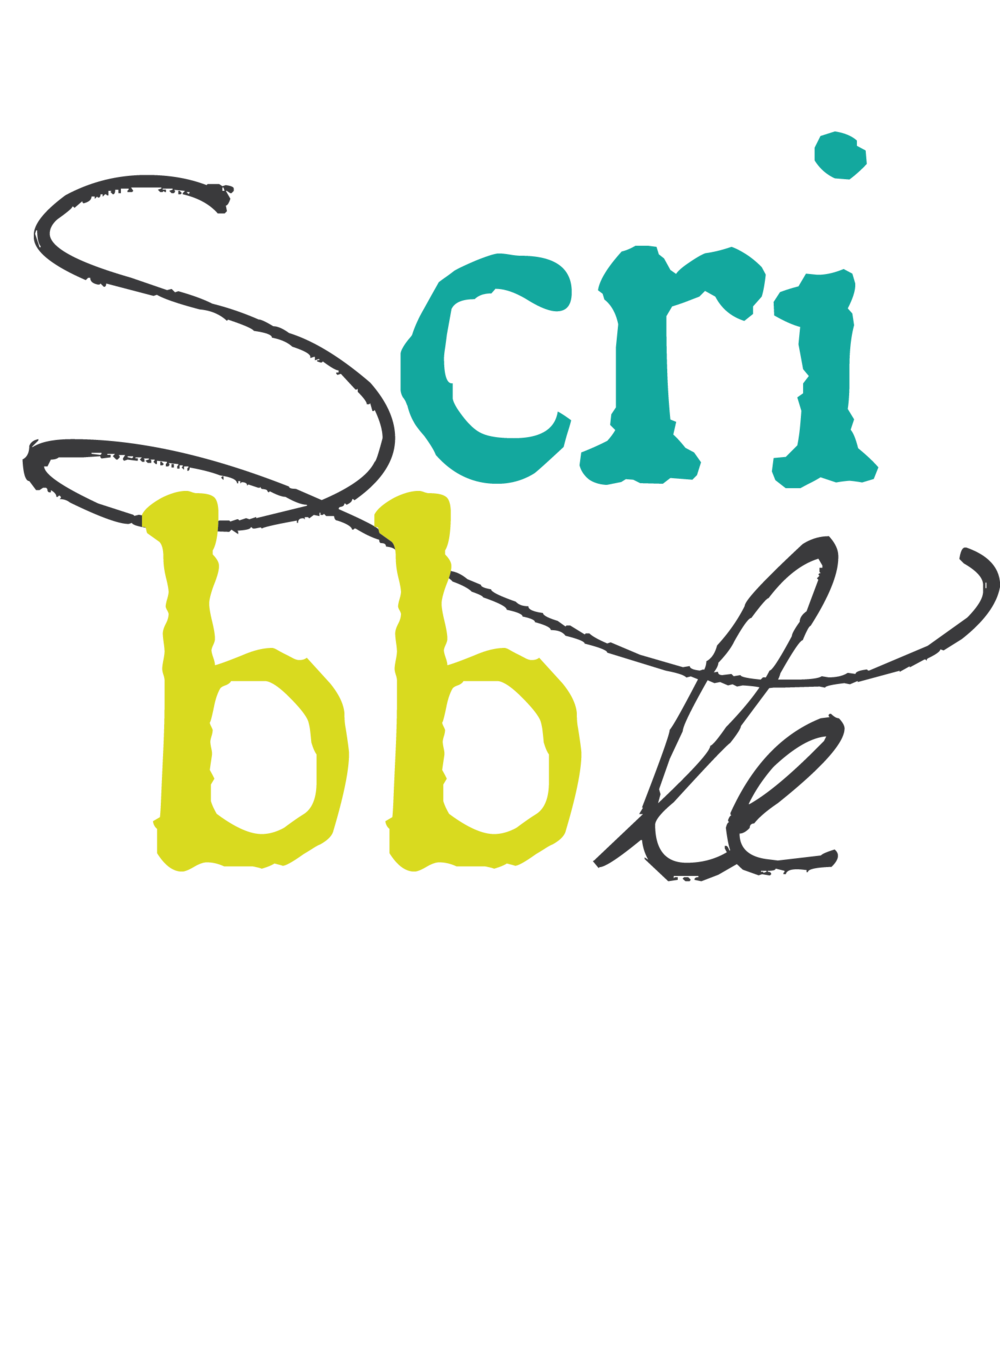 Scribble-logo-colour3-sq.png